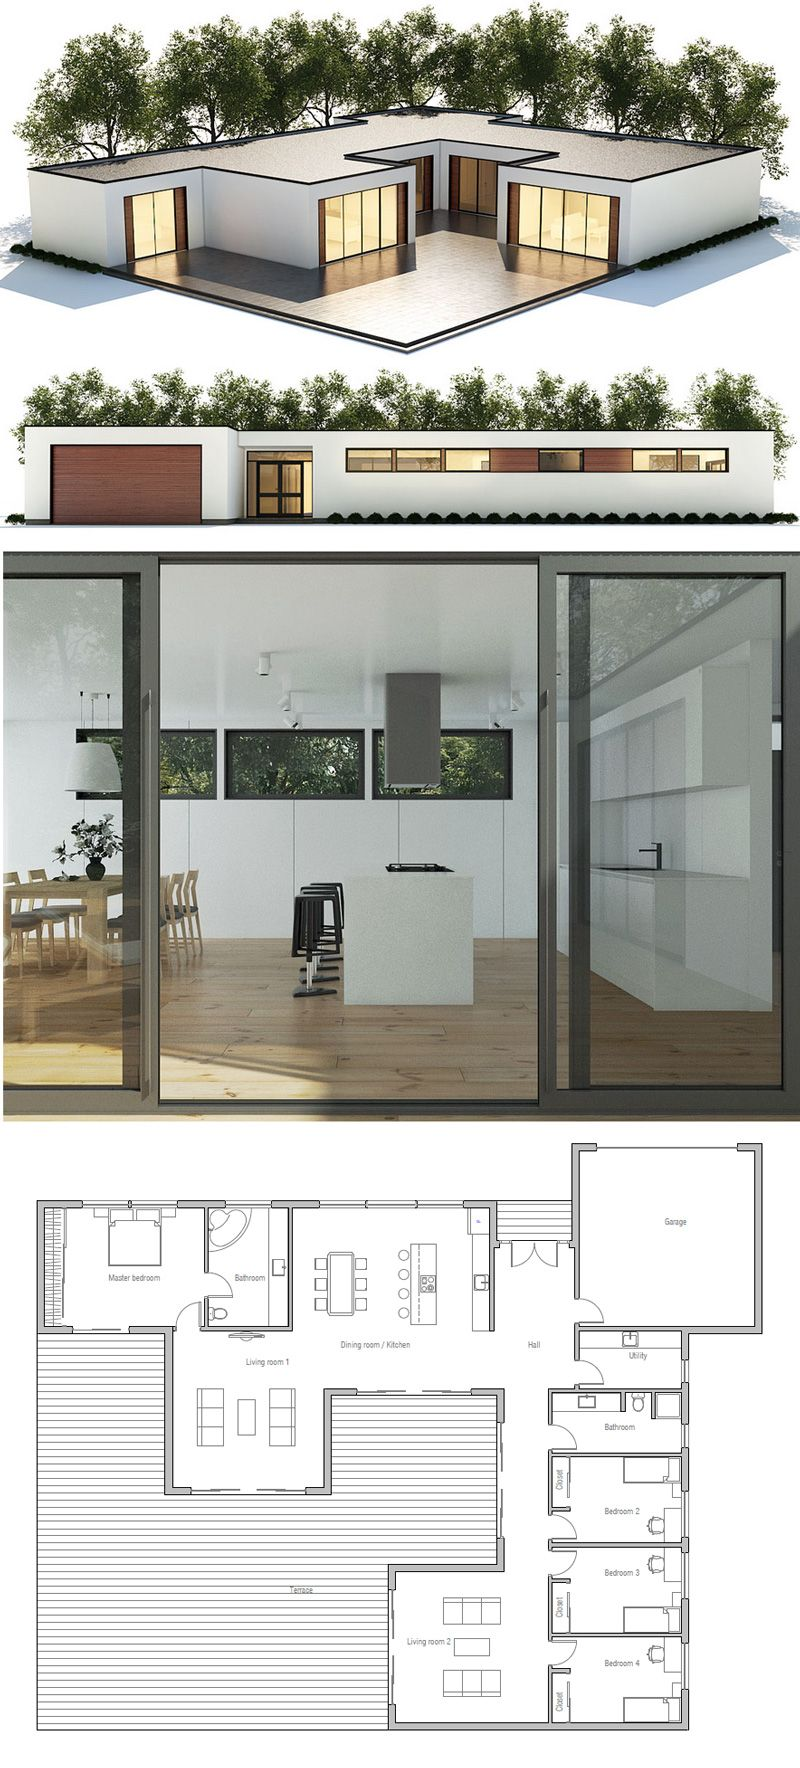 Container Homes Design Plans Property casa moderna- 4 bedrooms, 2 living spaces, courtyard | dream homes